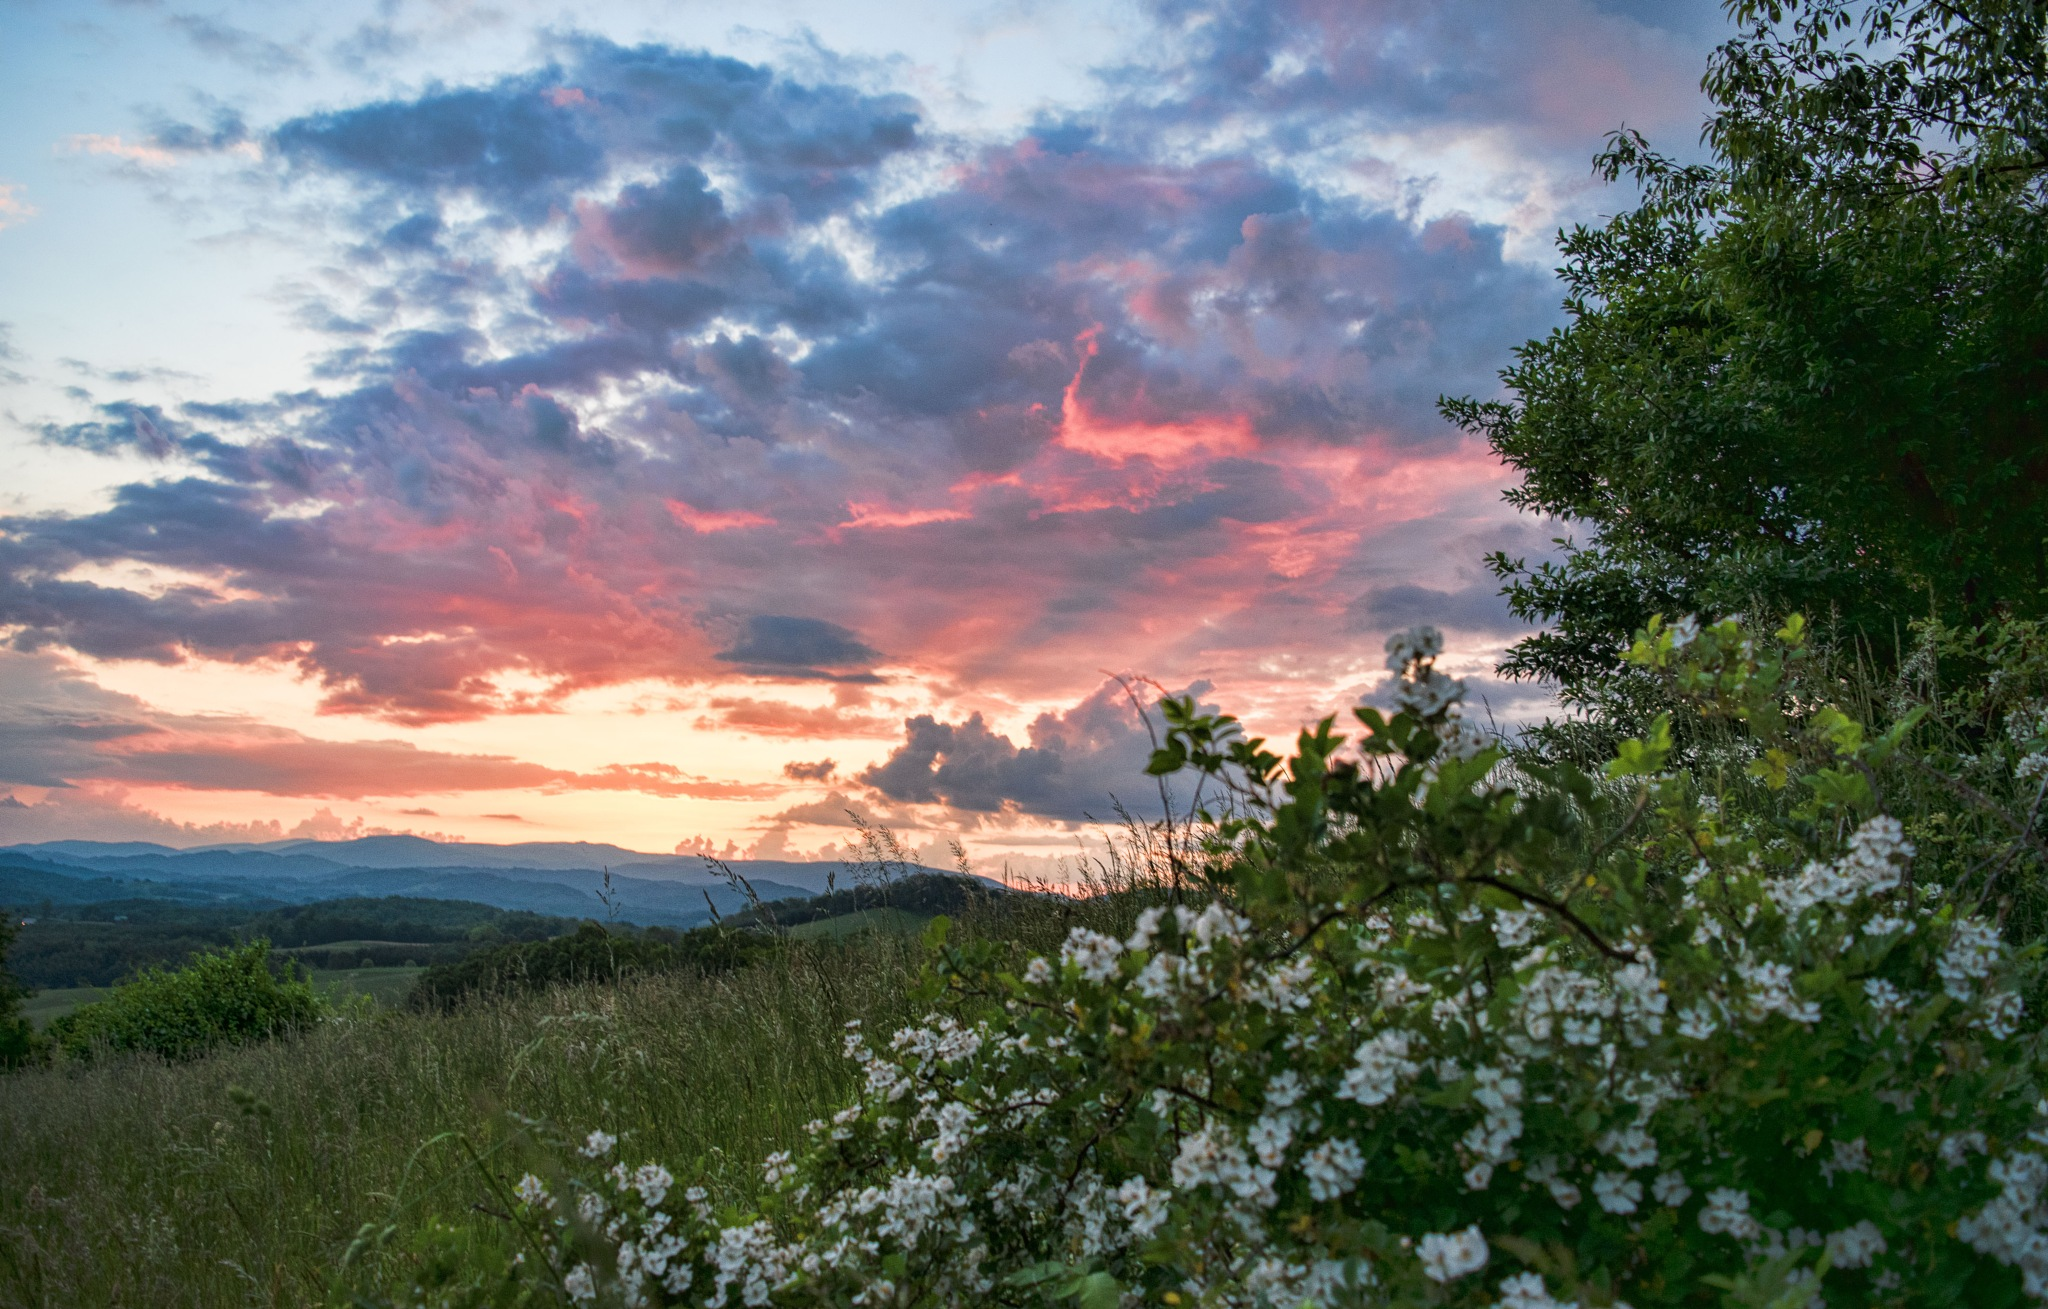 Sunset and Blackberry Blooms by Bonita Loggins